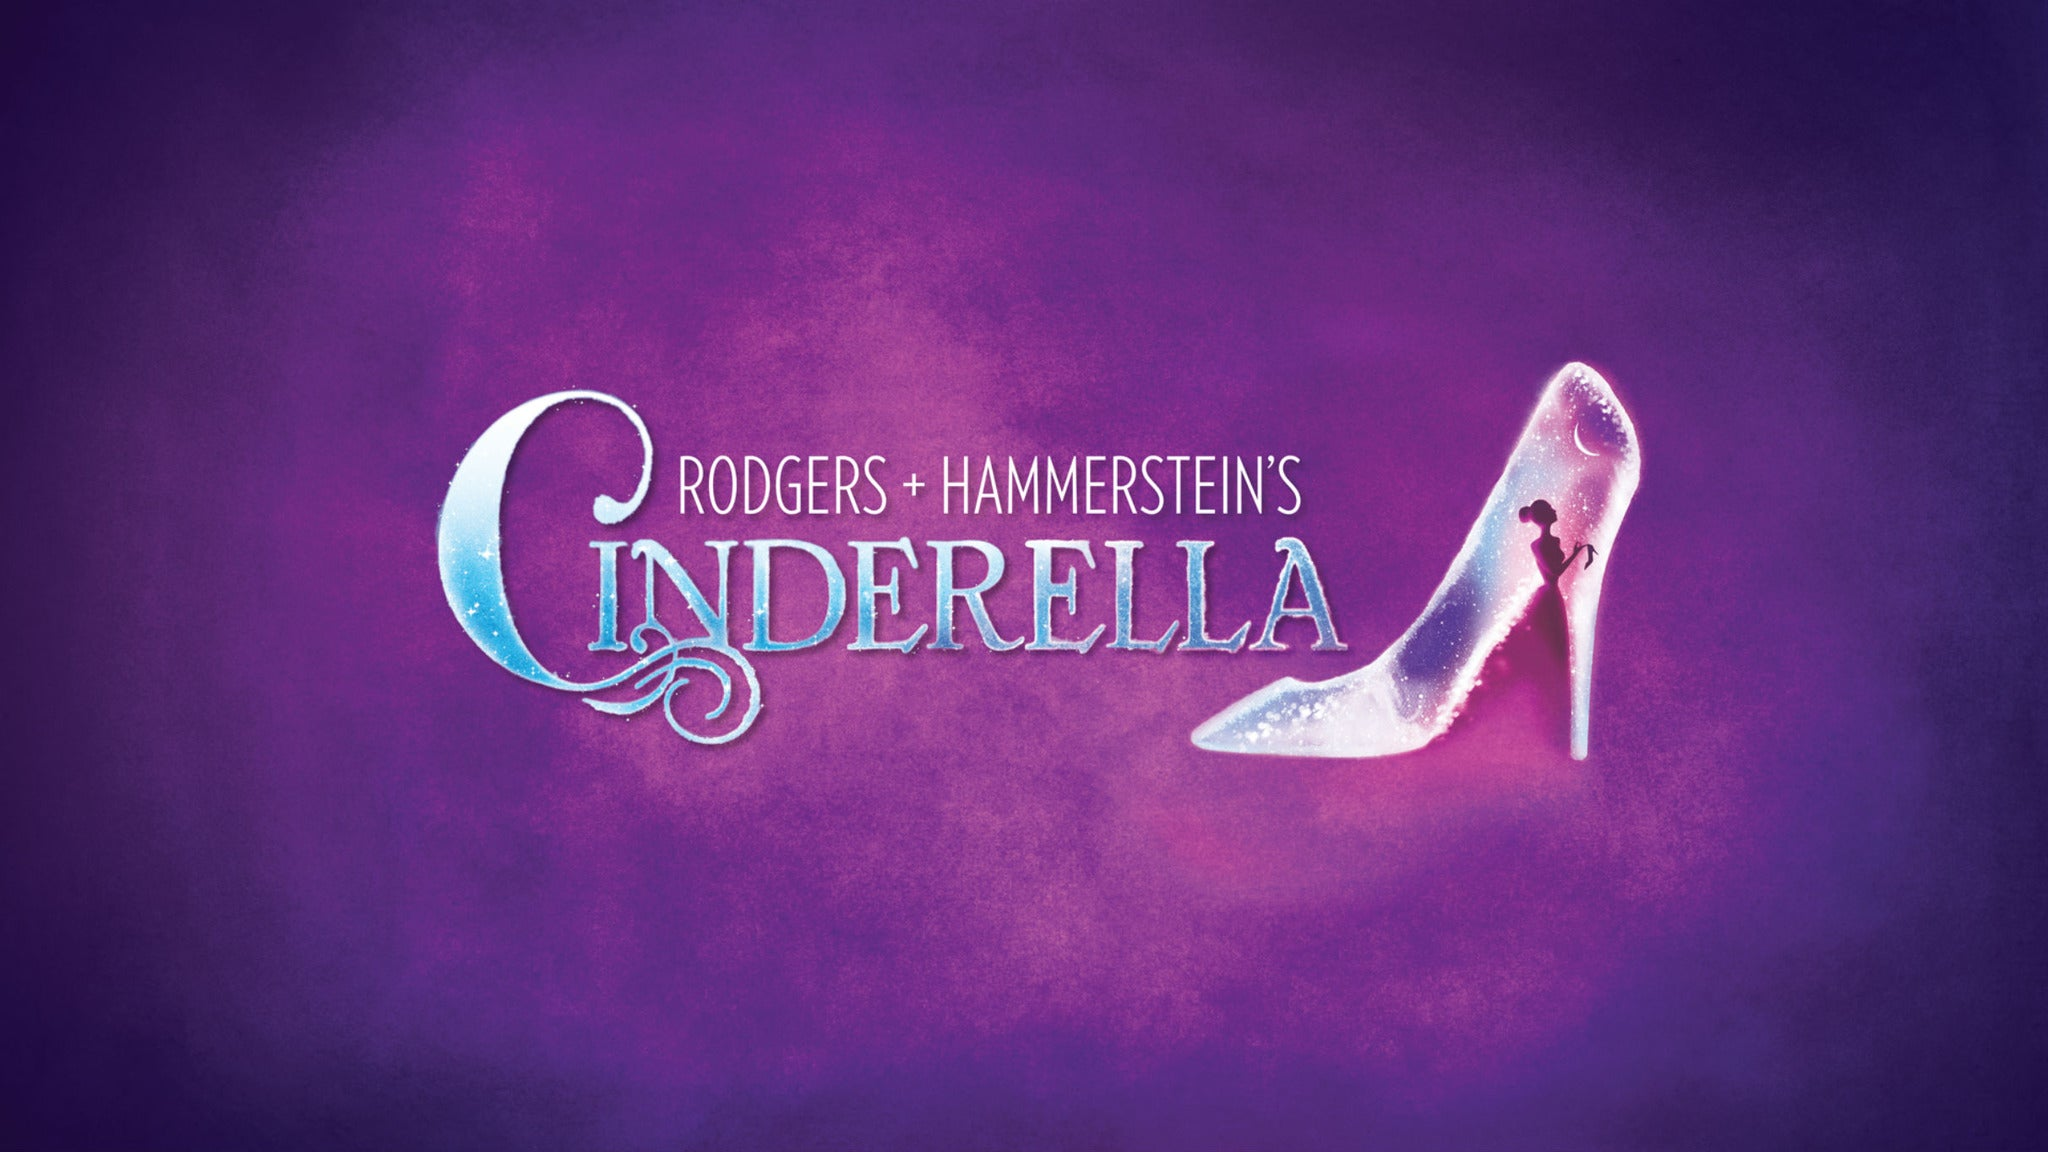 Cinderella-Theater at Washington Pavilion of Arts & Science